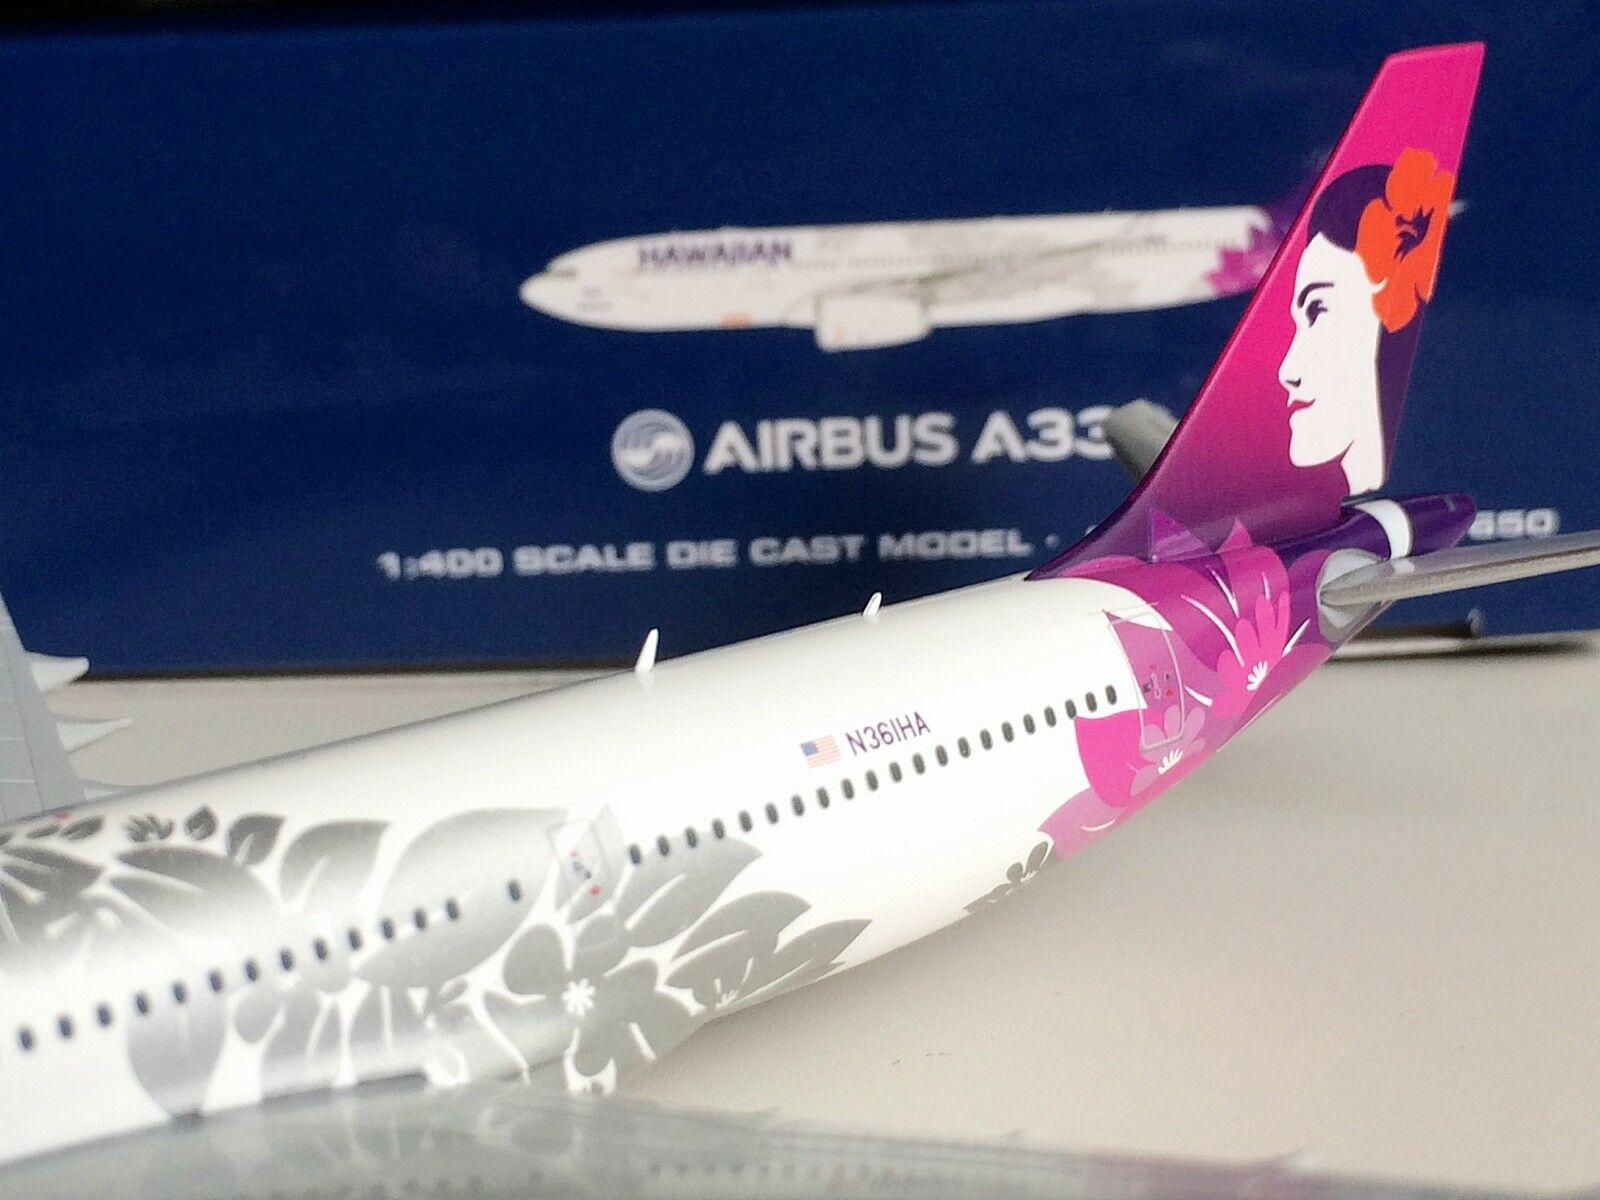 Gemini Jets 1 1 1 400 Hawaiian Airlines Airbus A330-200 New Livery AVIATIONMODELSHOP 963612